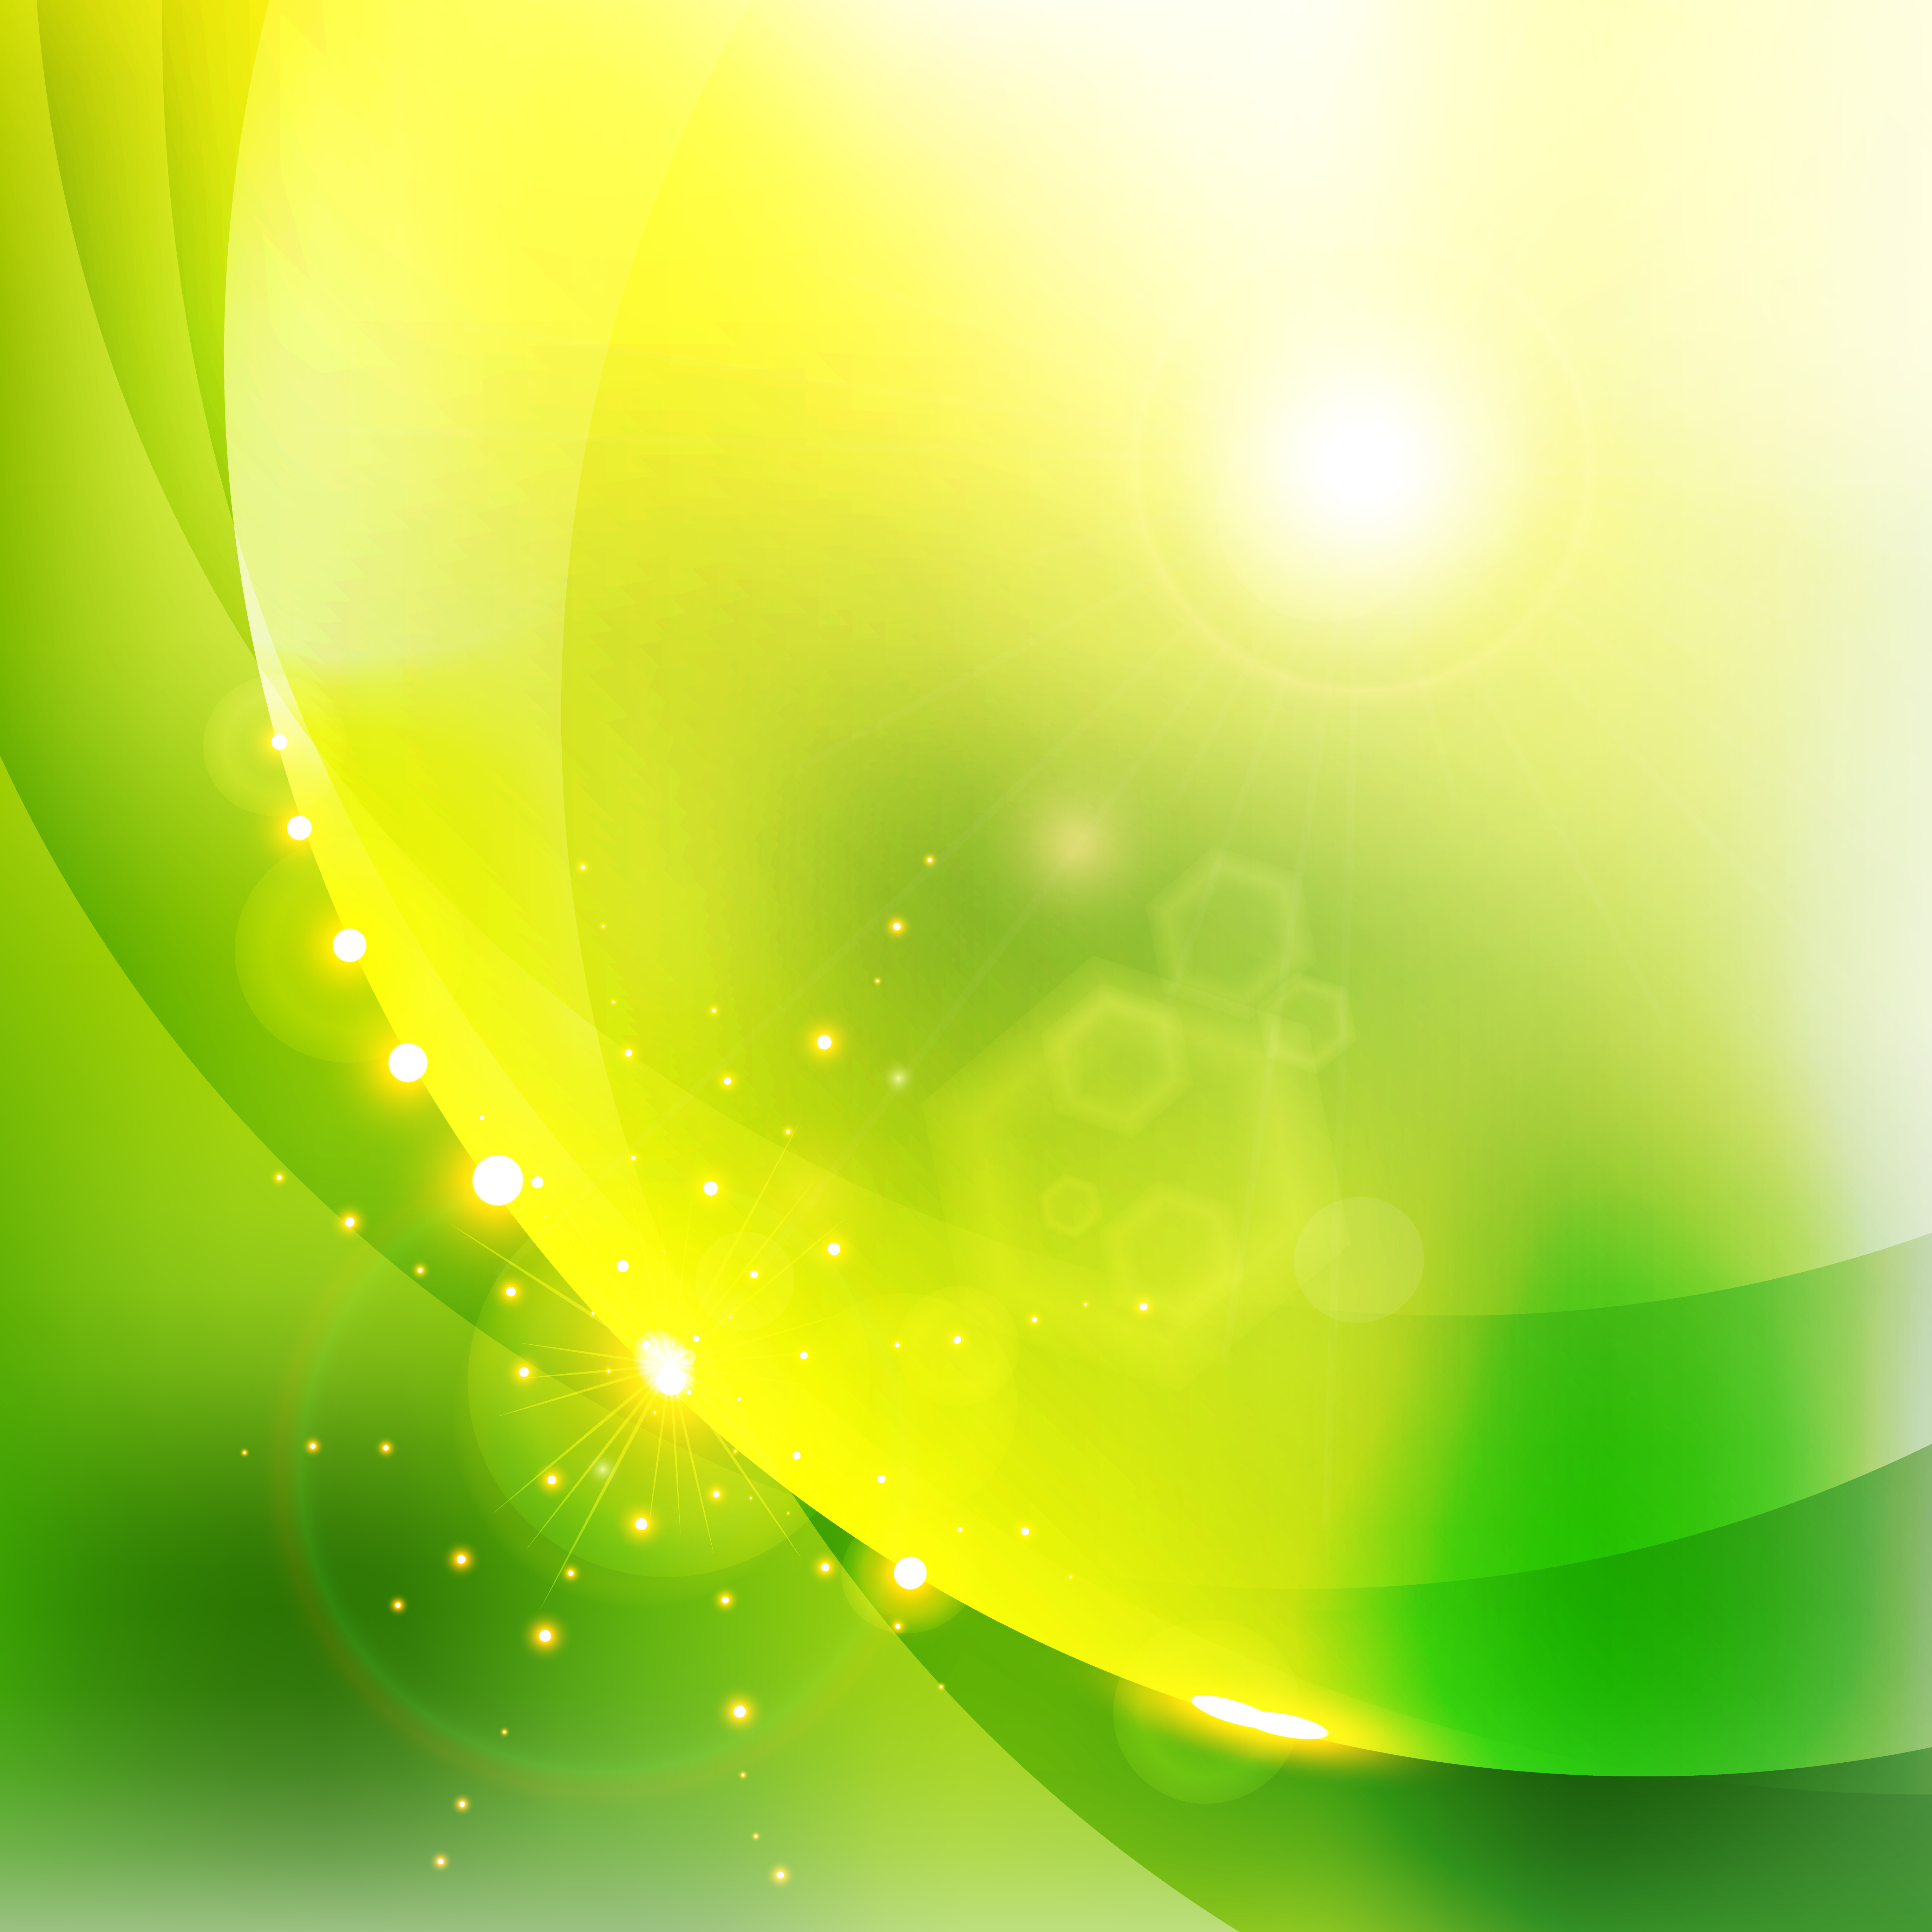 Abstract Shining Nature Green Color Background.